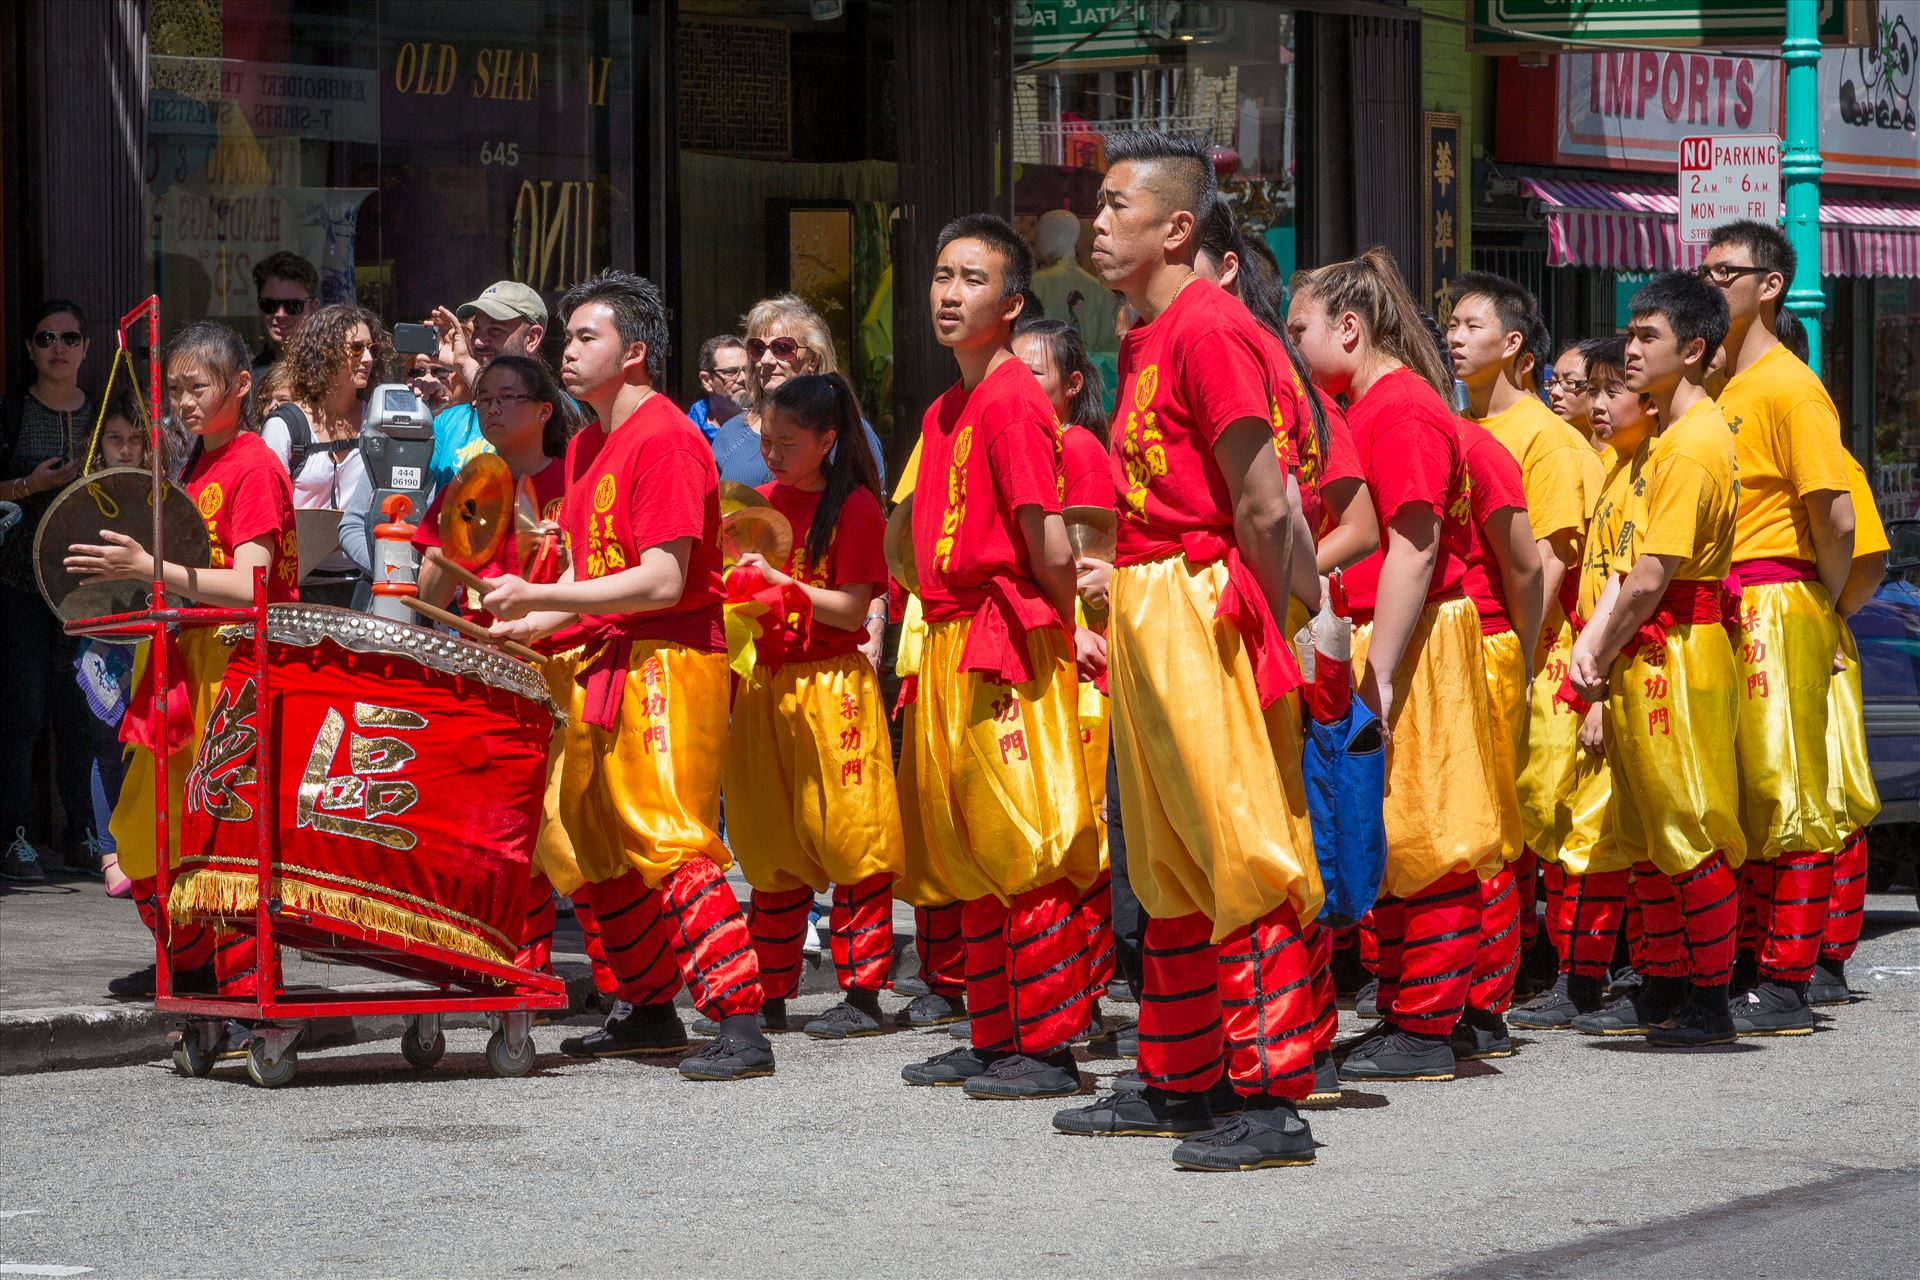 Chinatown Street Performance -  by D Scott Smith